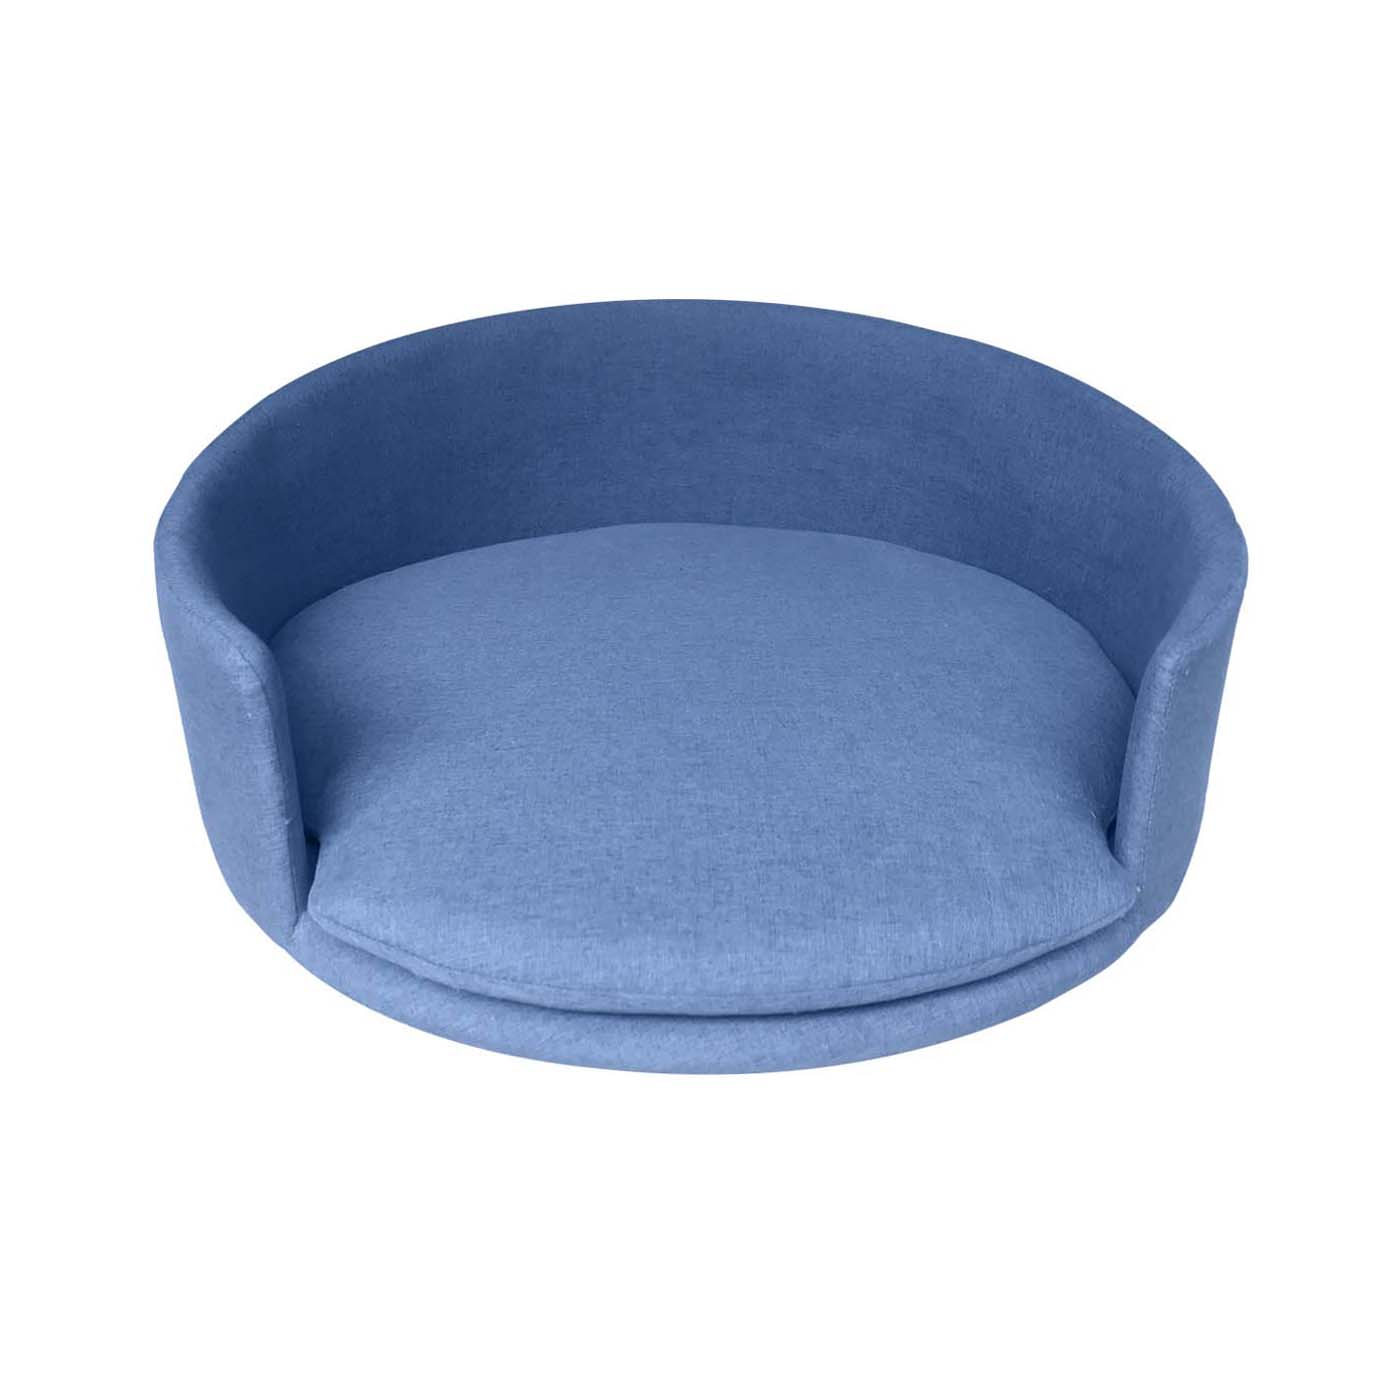 The Dark Blue Huisdier Pet Bed